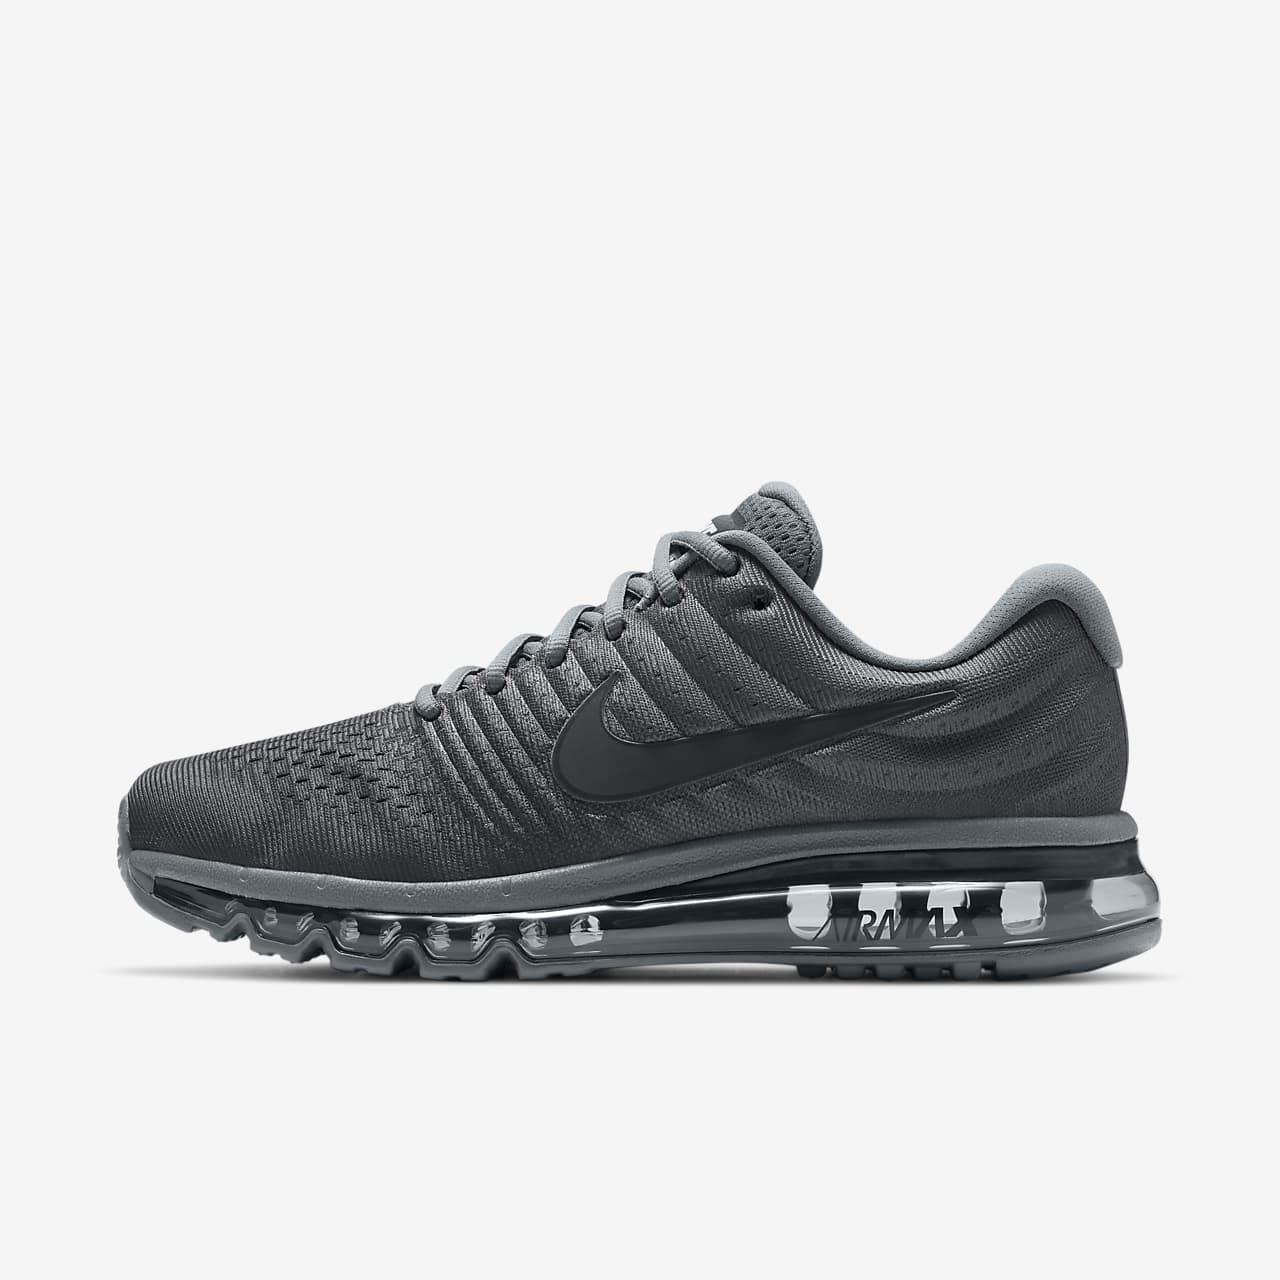 44efb0c61772 Nike Air Max 2017 Men s Shoe. Nike.com